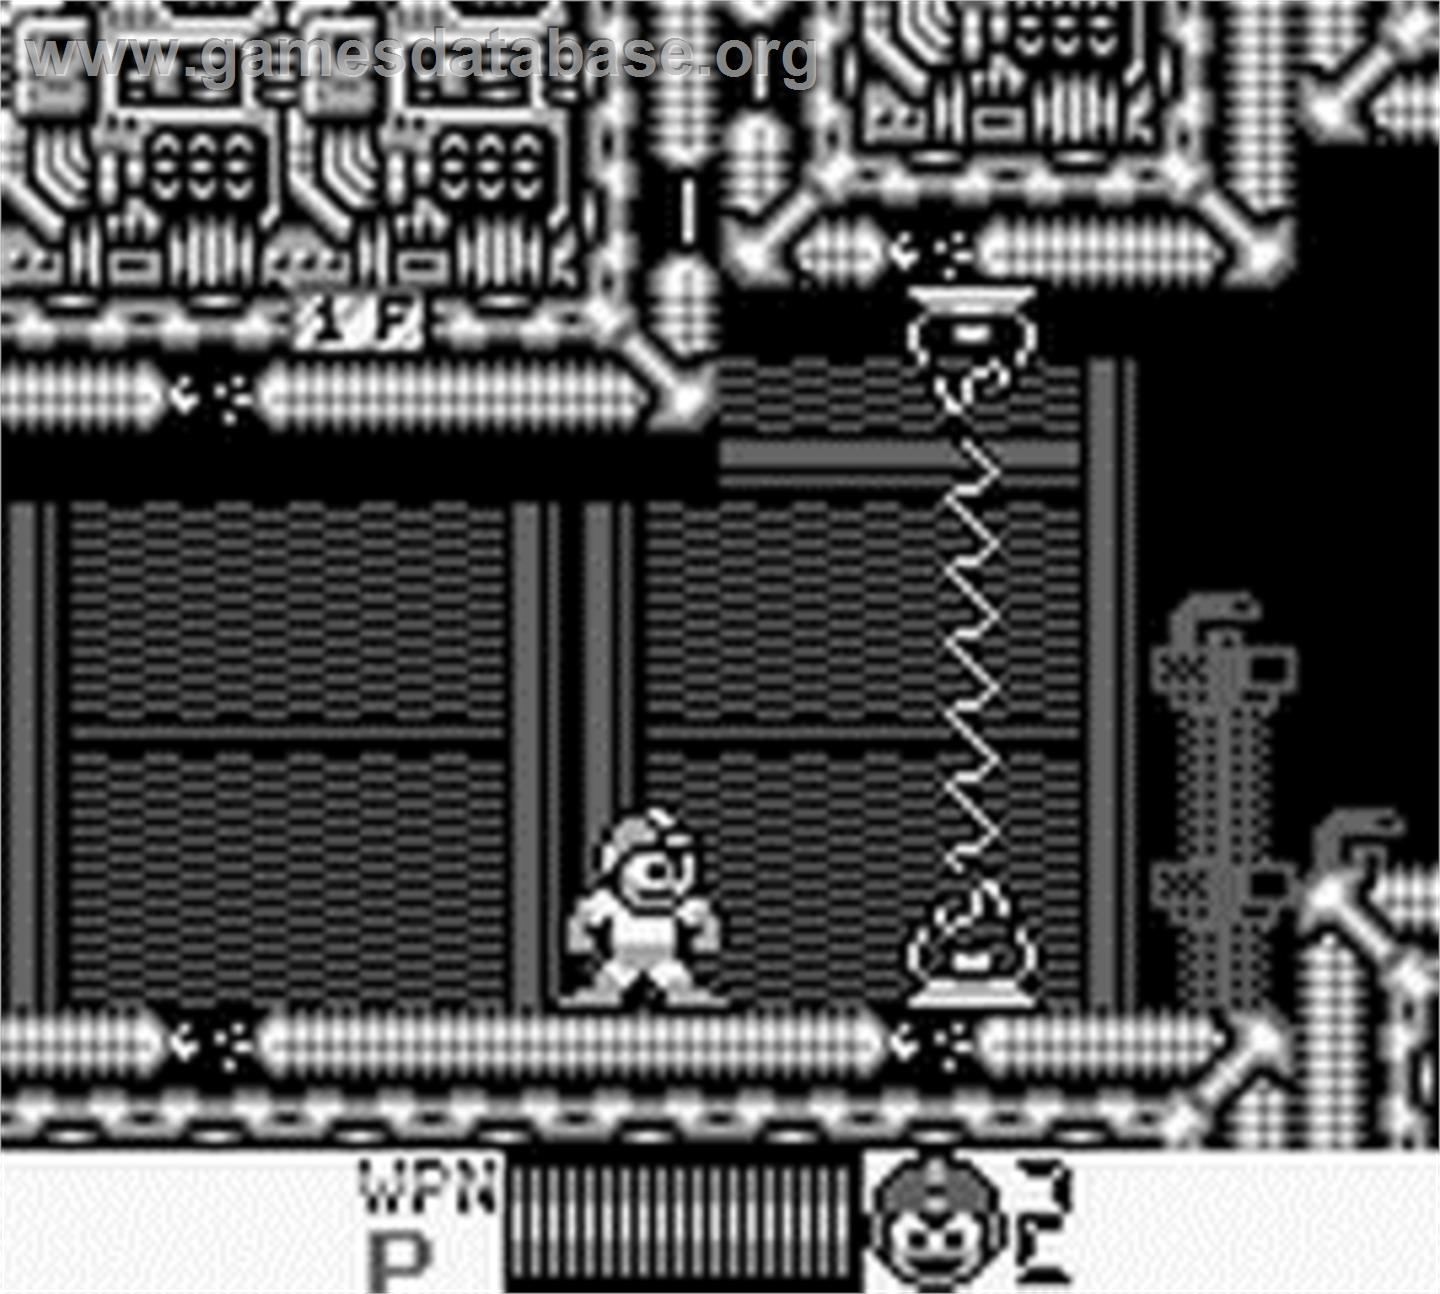 Snakes Is The Direction Game Like Wormies The Lines Are: Reasons Why The Gameboy Mega Man Games Are Amazing (and